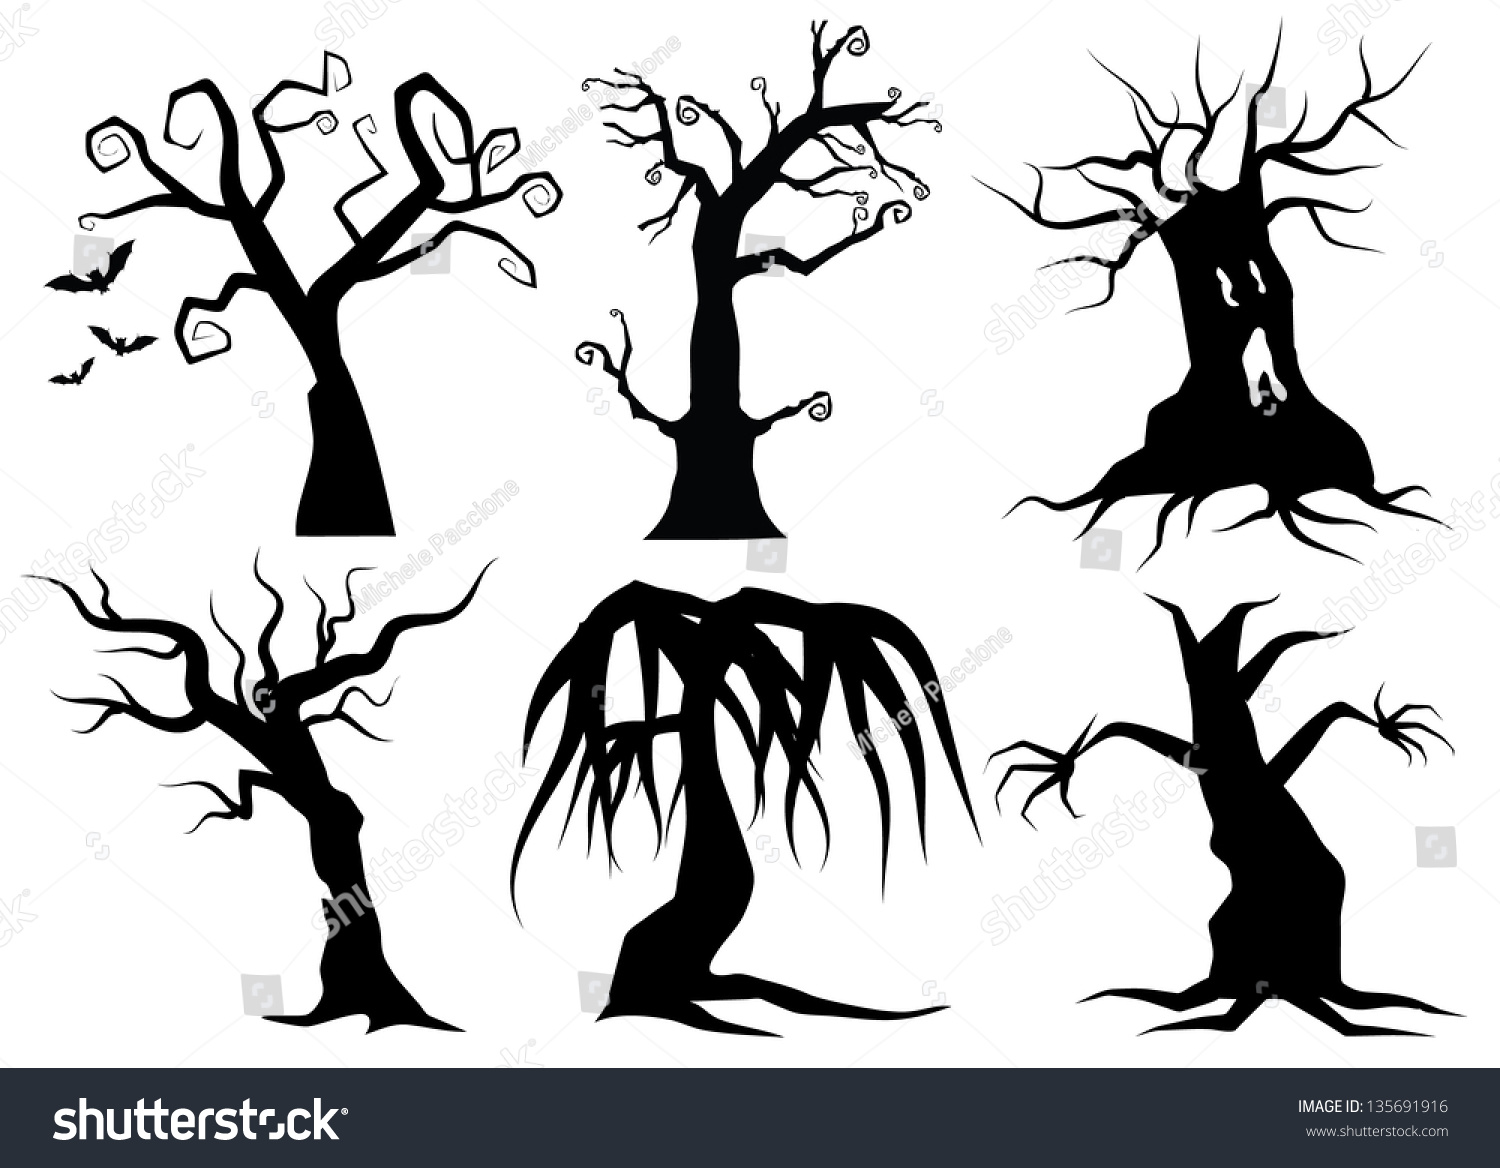 Creepy Cartoon Trees Eps 8 Vector Stock Vector Royalty Free 135691916 How to draw cartoon trees with easy step by step drawing tutorial. https www shutterstock com image vector creepy cartoon trees eps 8 vector 135691916